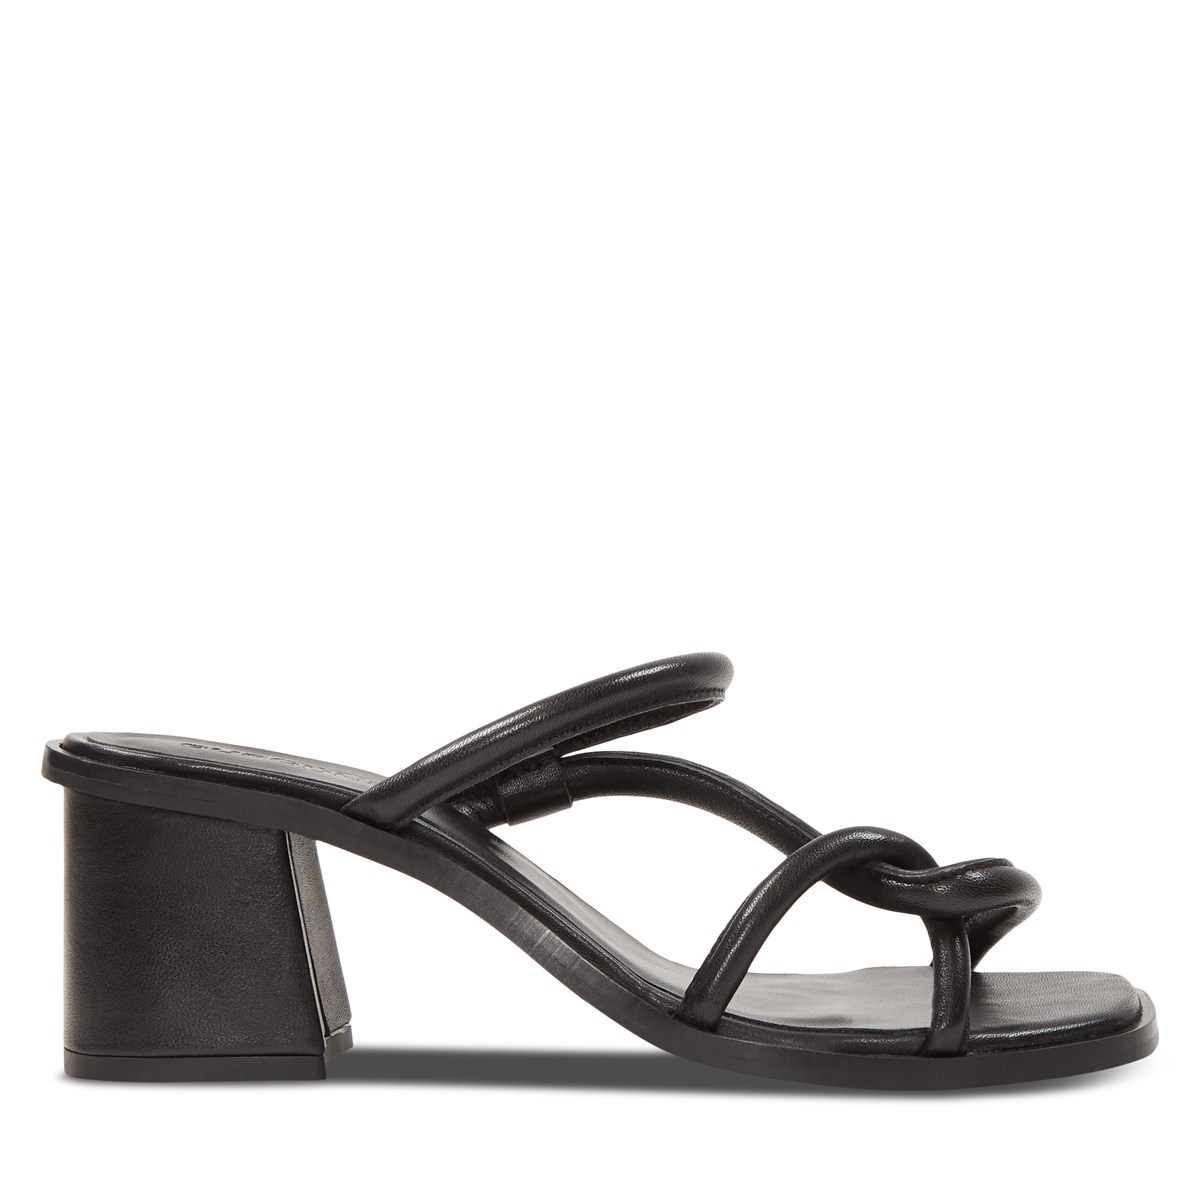 Women's Amelie Heeled Strapped Sandals in Black